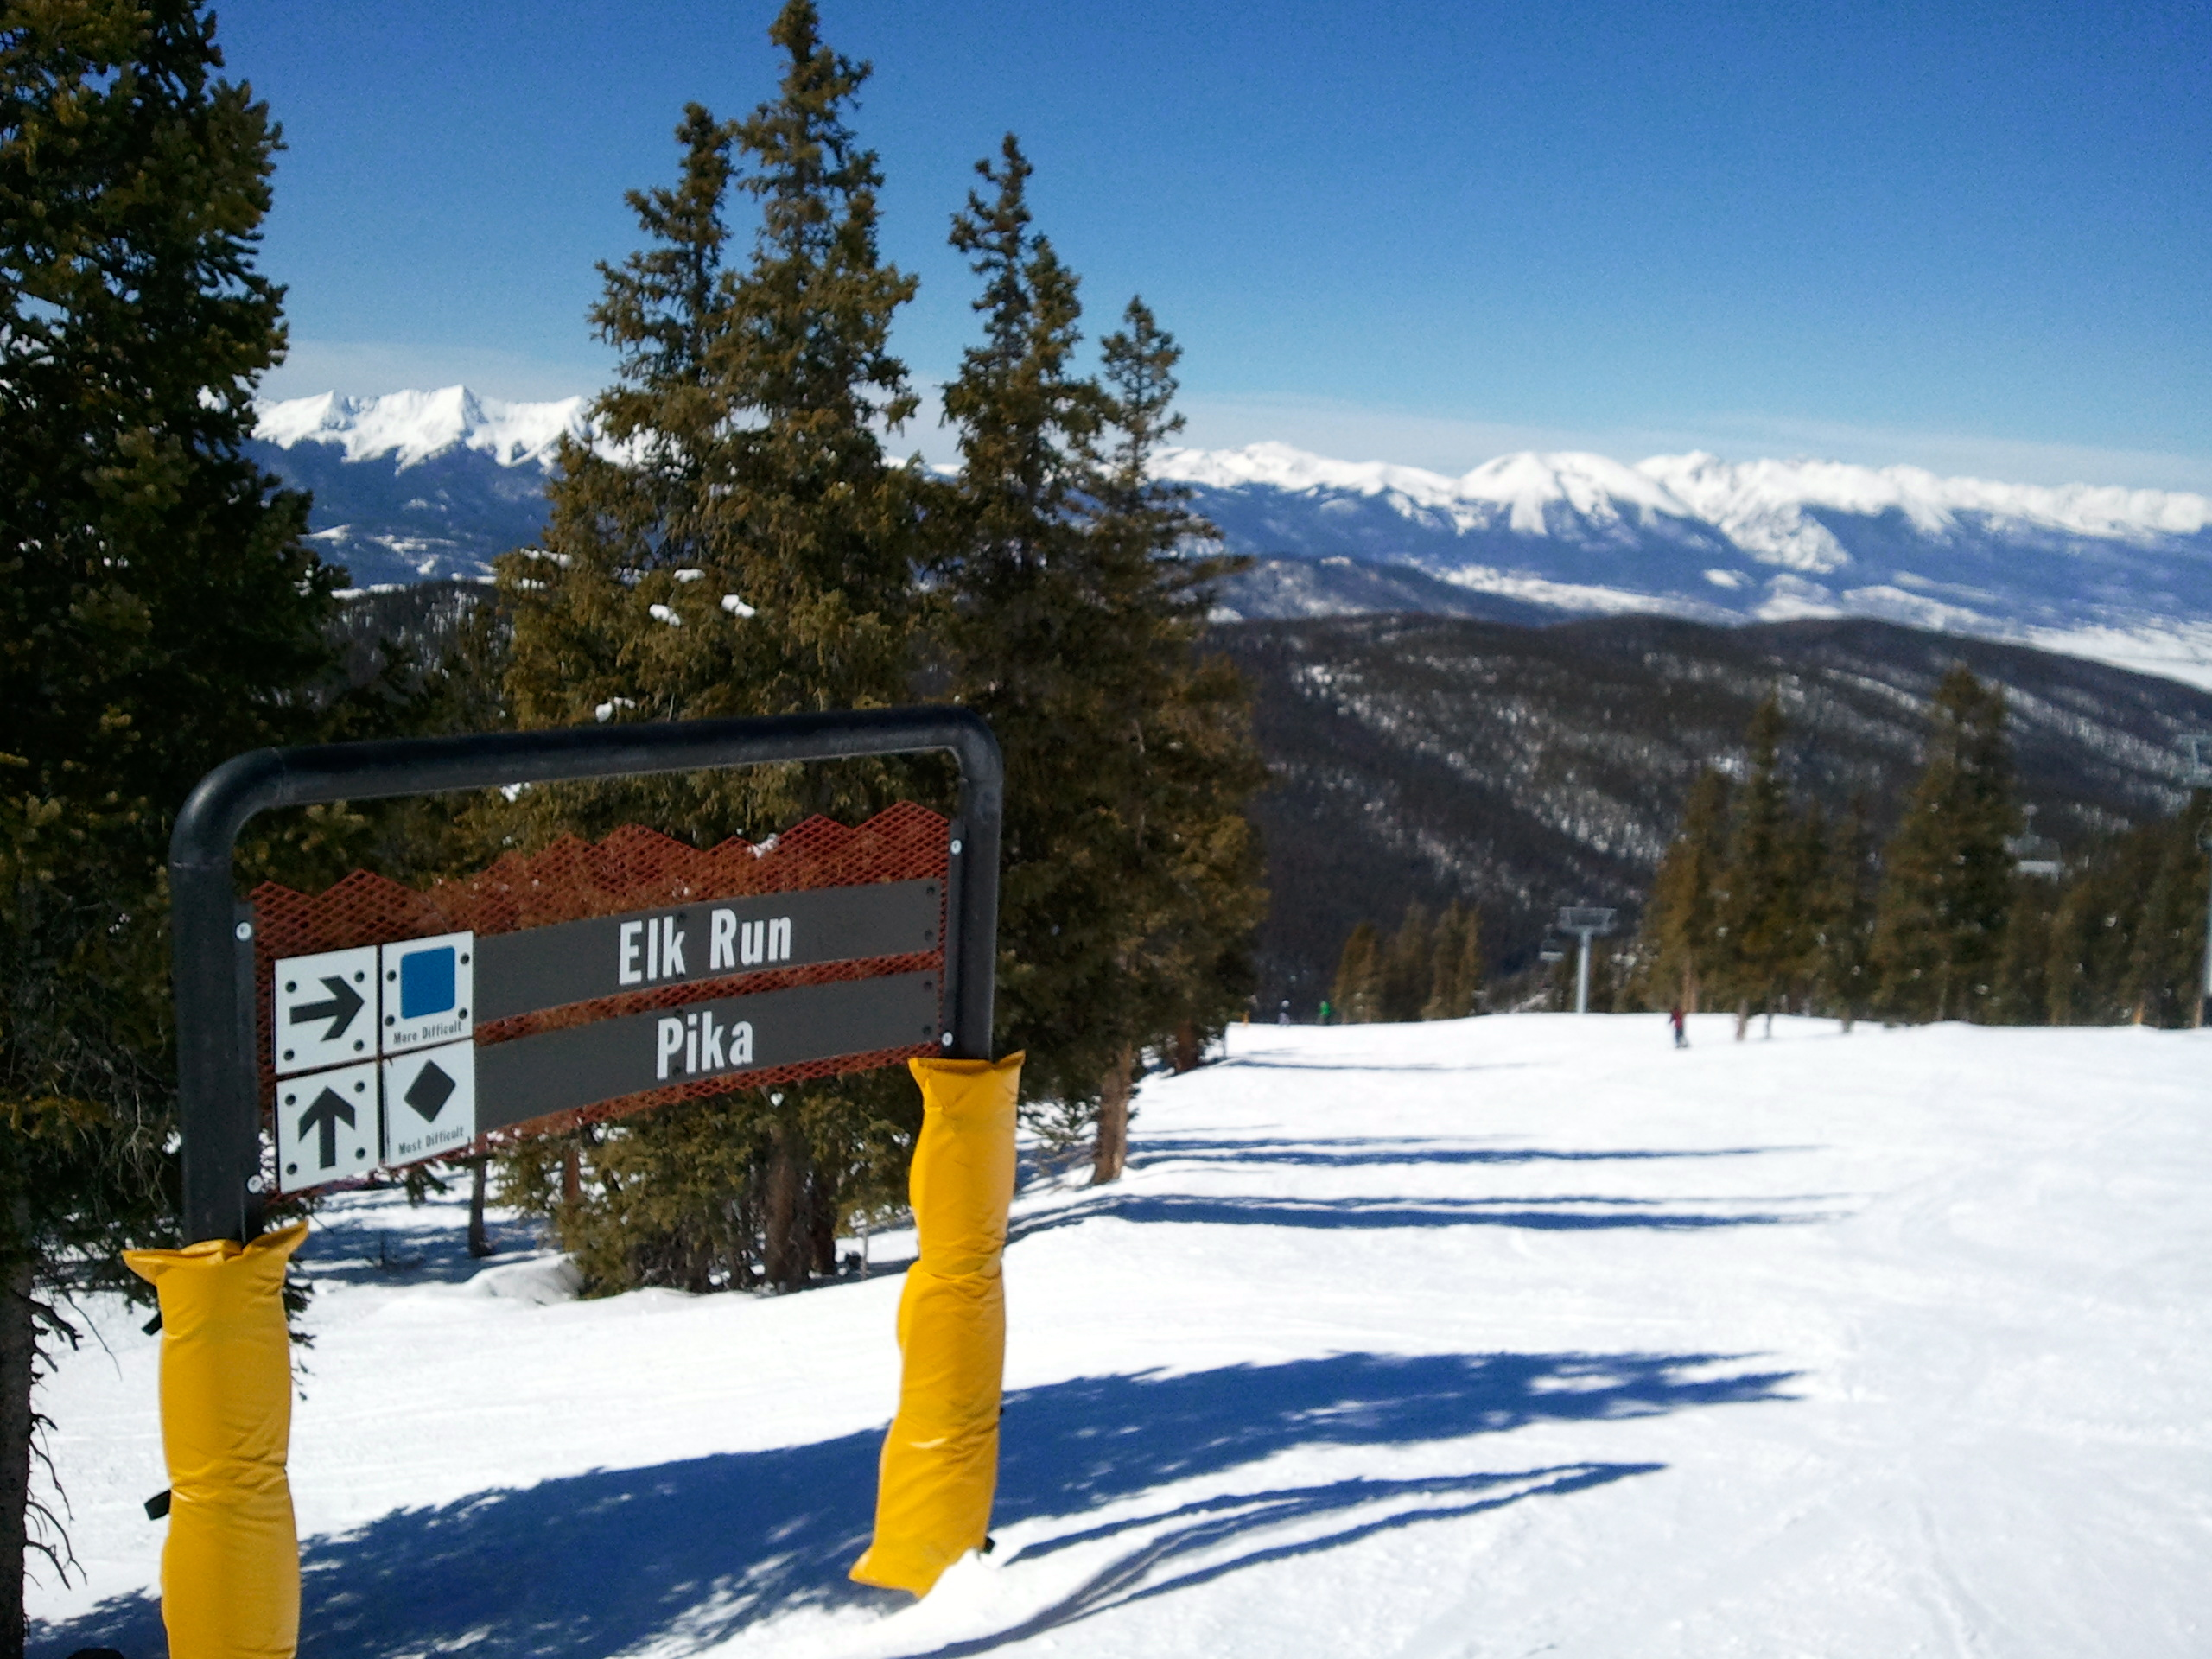 Skier who died after hitting tree at Keystone Resort ID'ed by coroner